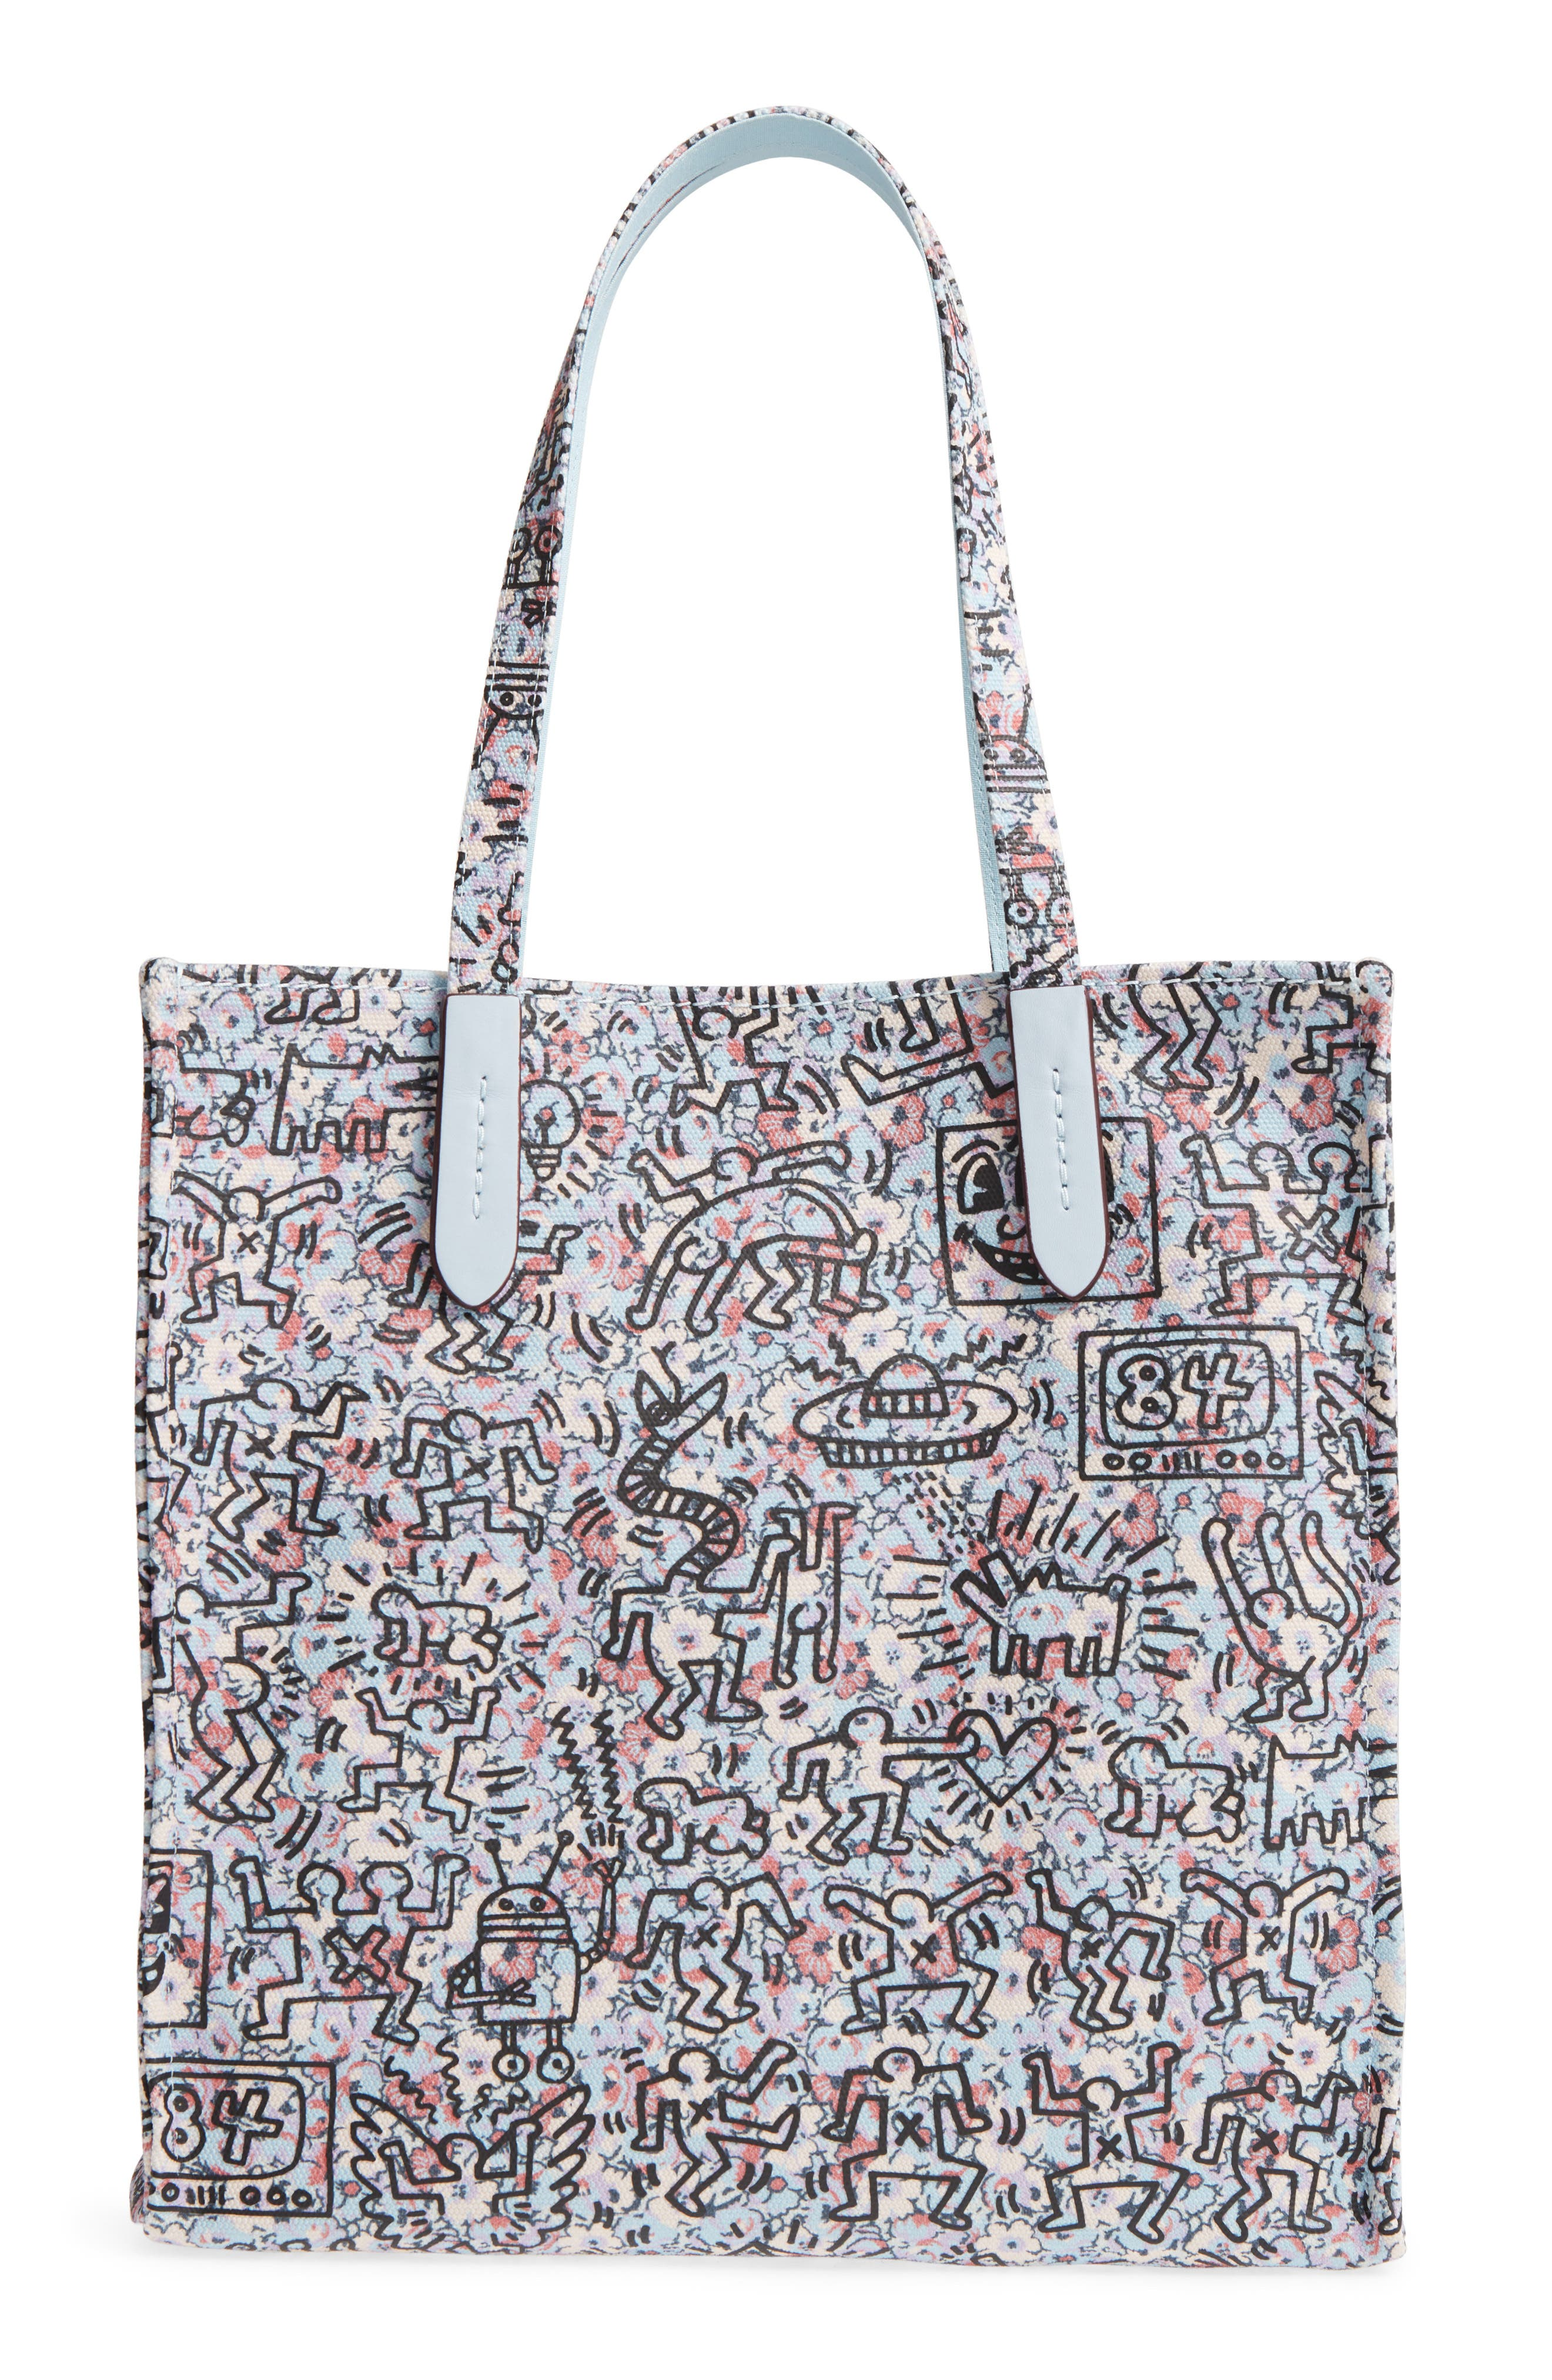 COACH x Keith Haring Print Canvas Tote